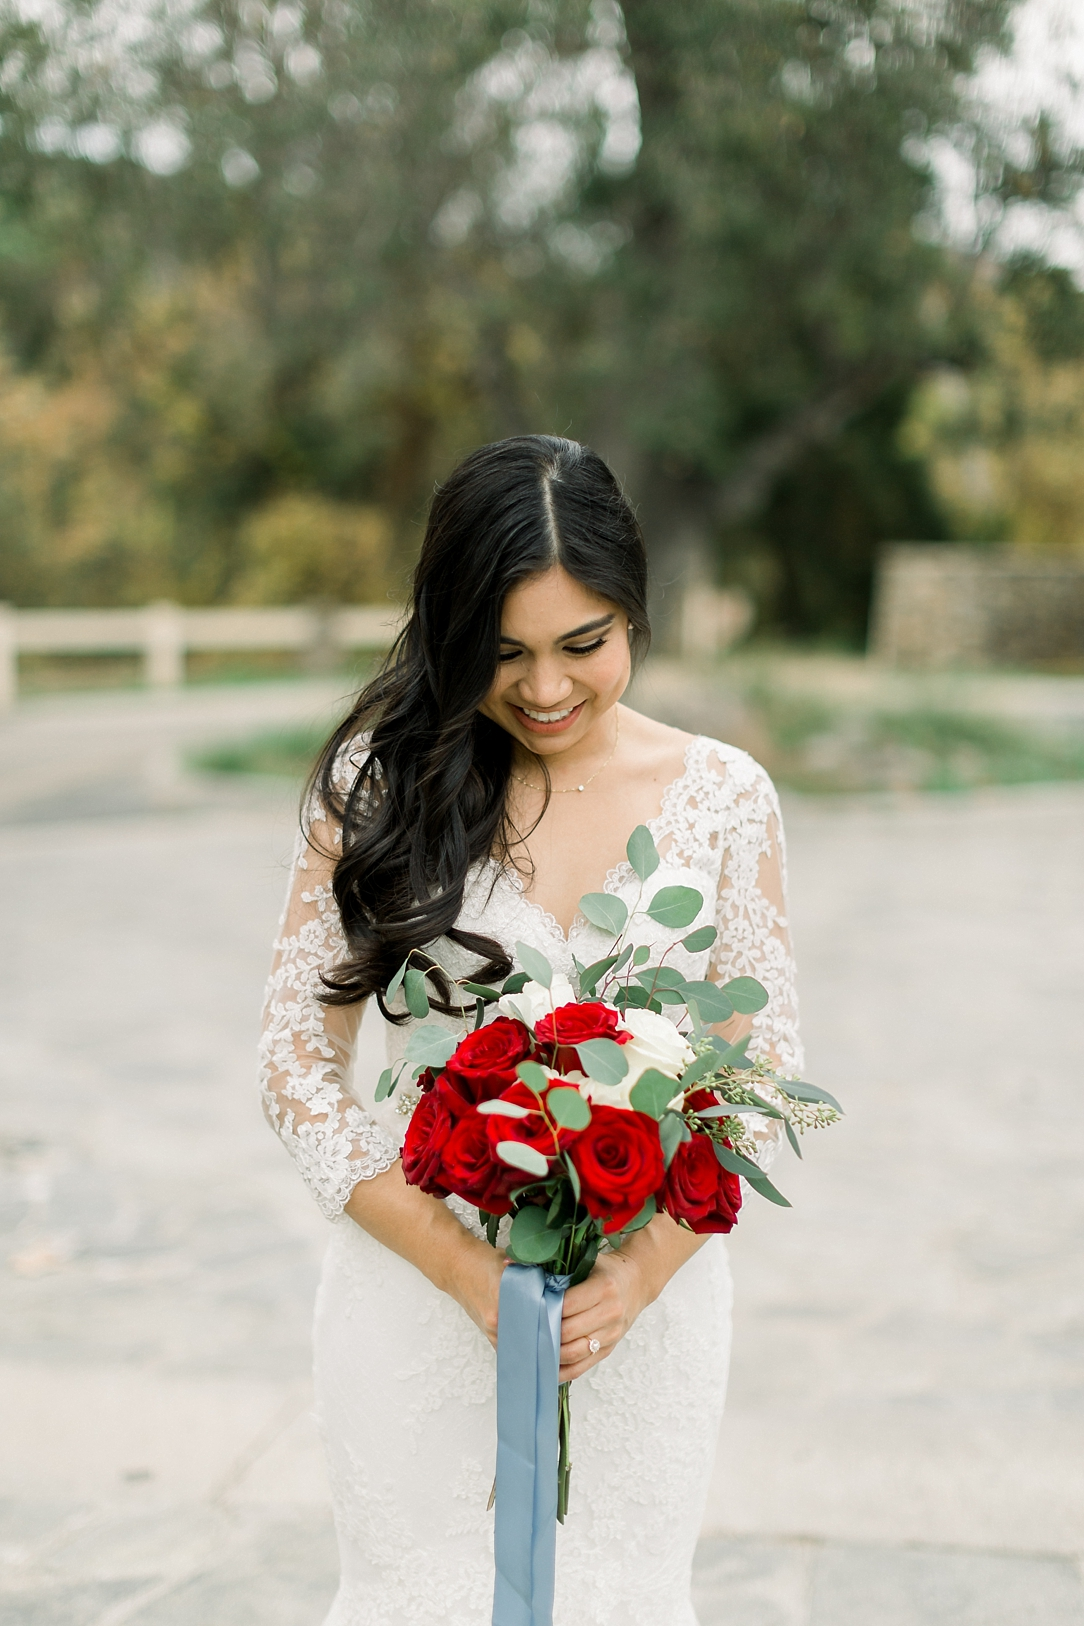 A Vintage Inspired Wedding At Santiago Oaks Regional Park And The Vintage Rose By Natural Light Photographer Madison Ellis Photography. (56)